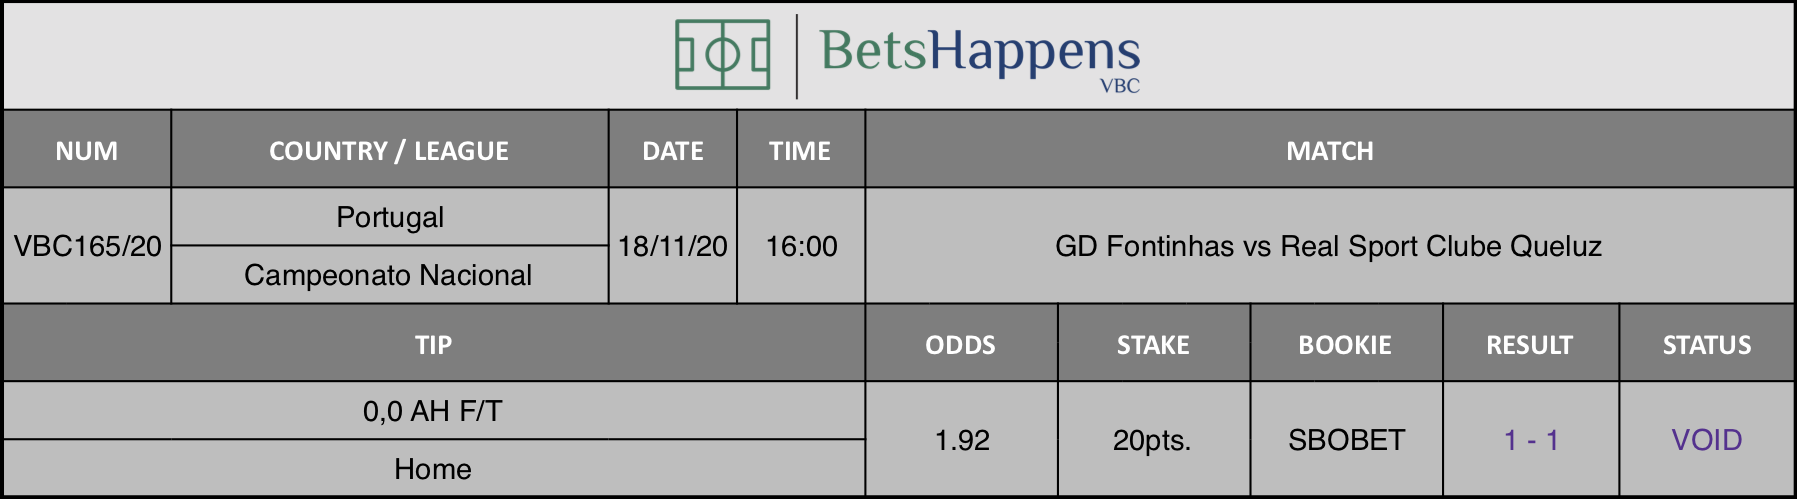 Results of our tip for the GD Fontinhas vs Real Sport Clube Queluz match where 0,0 AH F/T  Home is recommended.